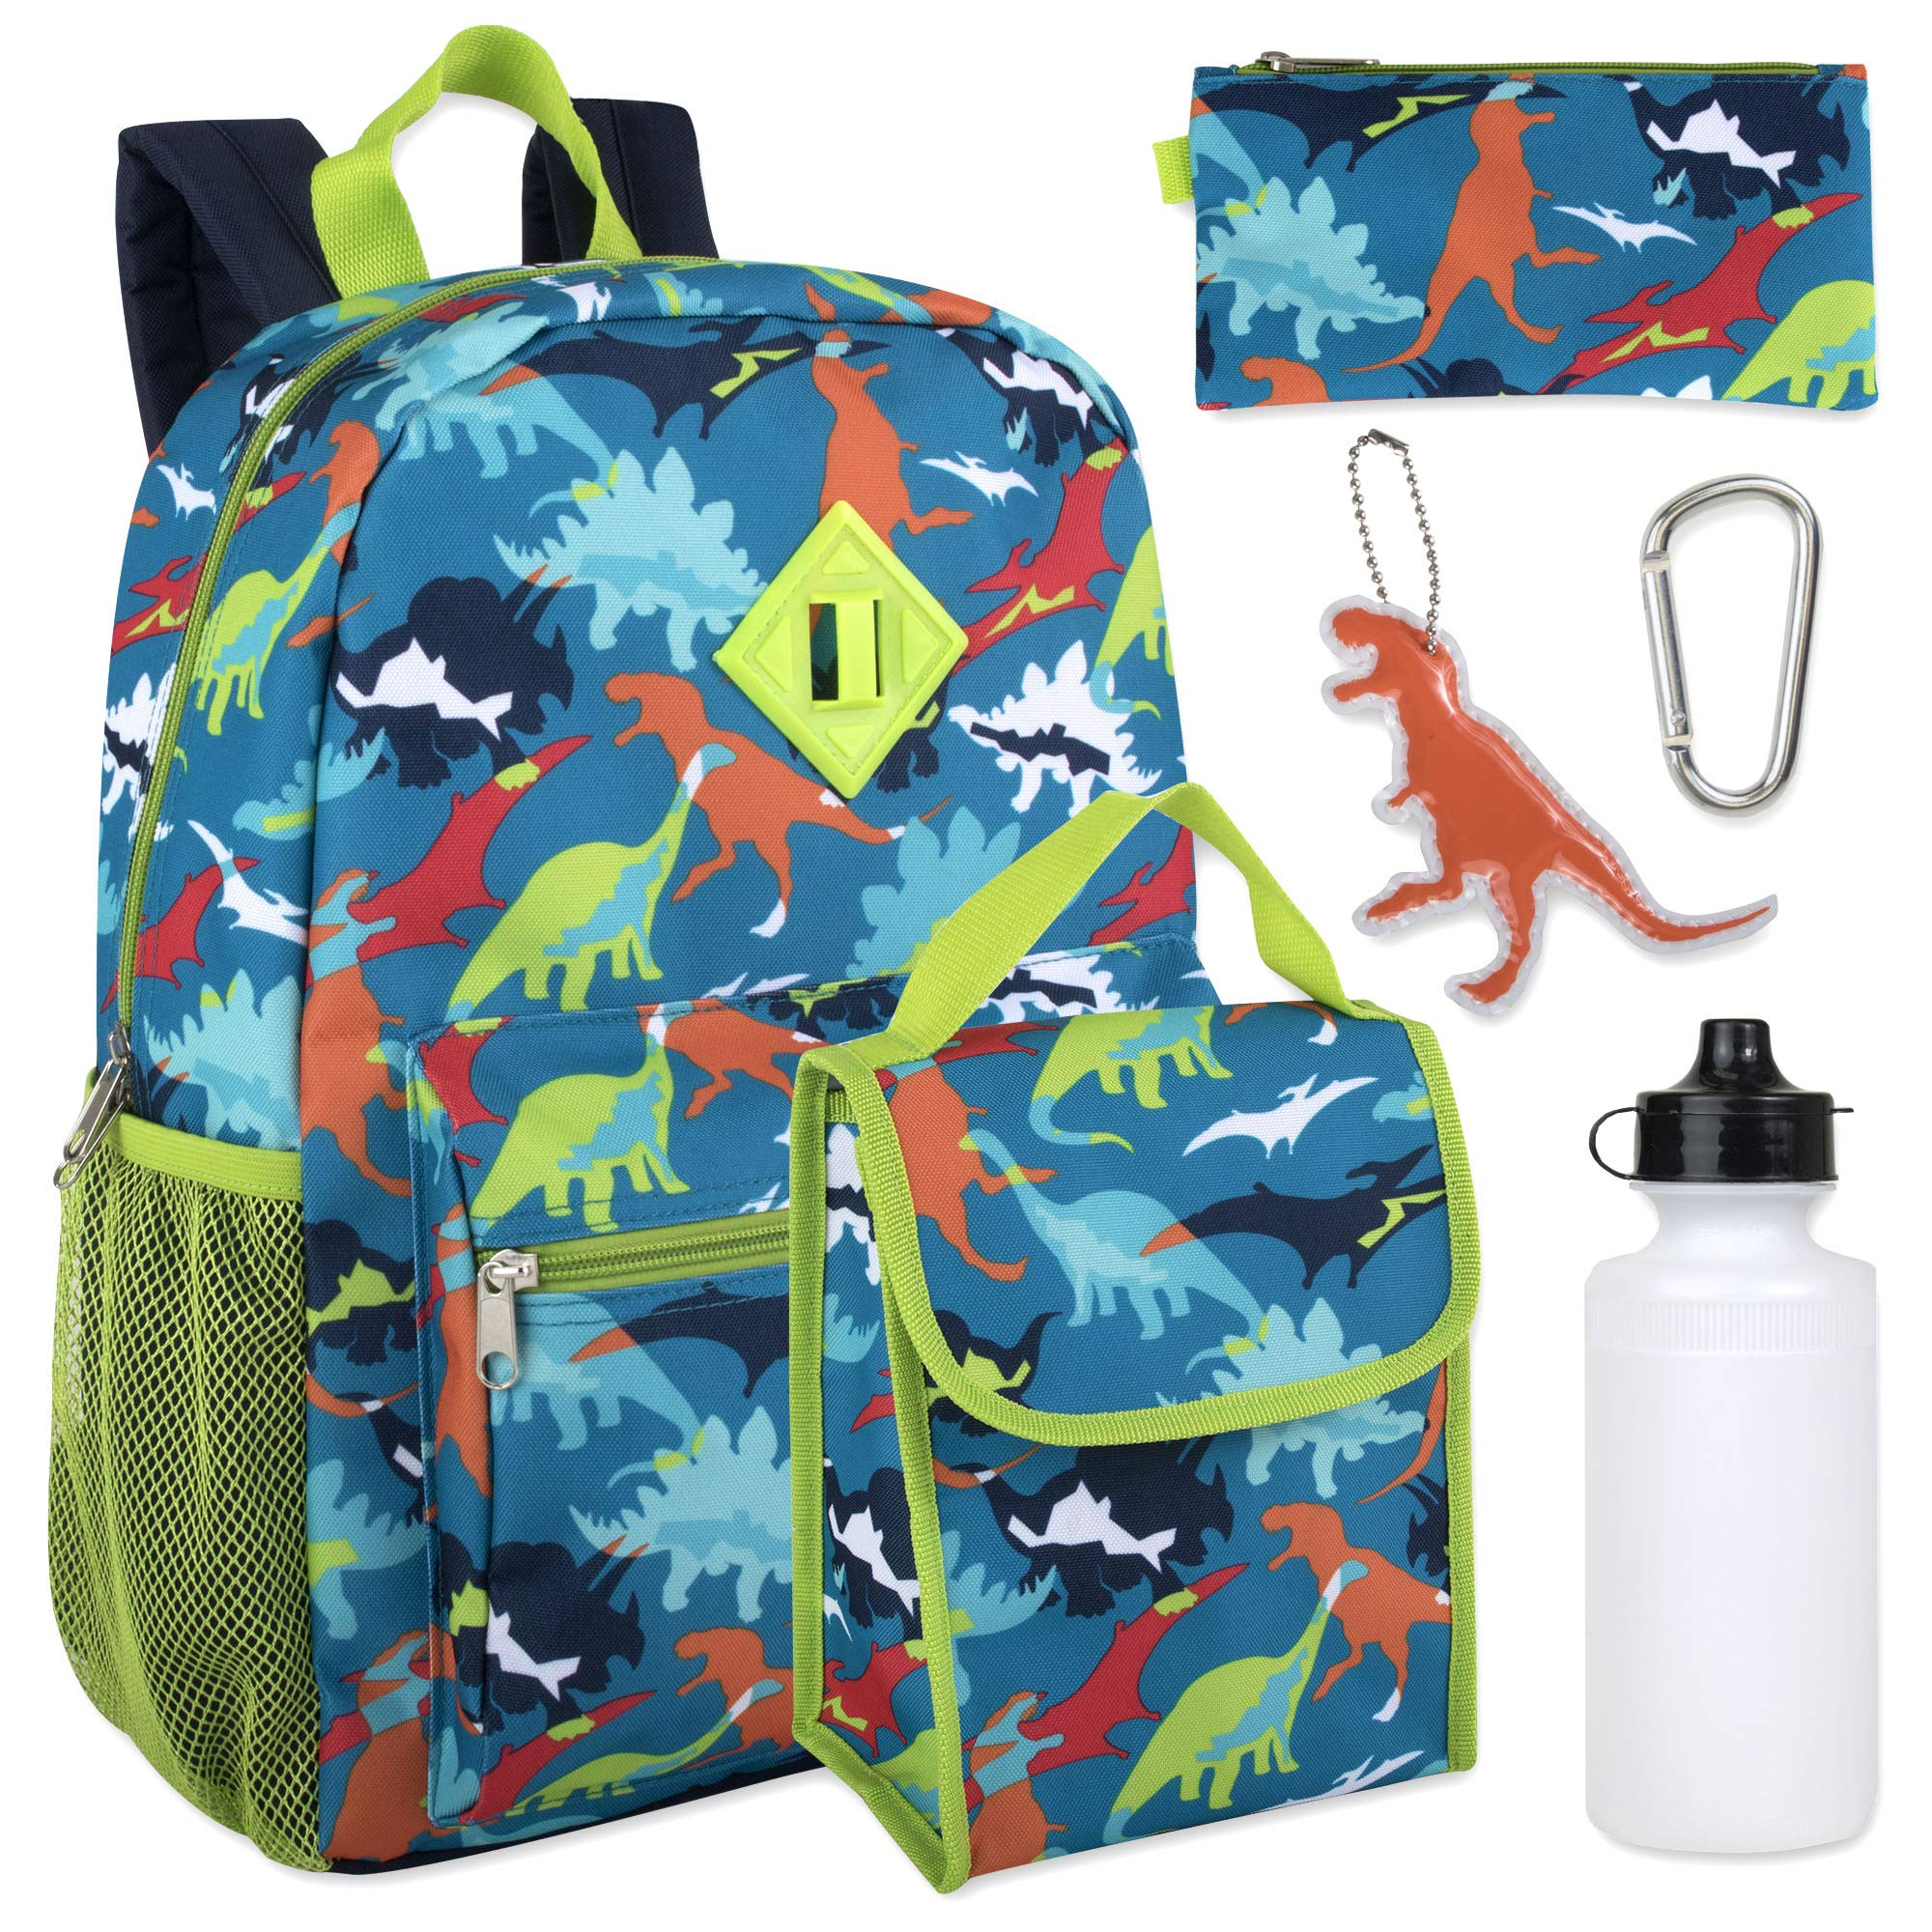 Backpack Pencil Bottle Keychain Dinosaurs